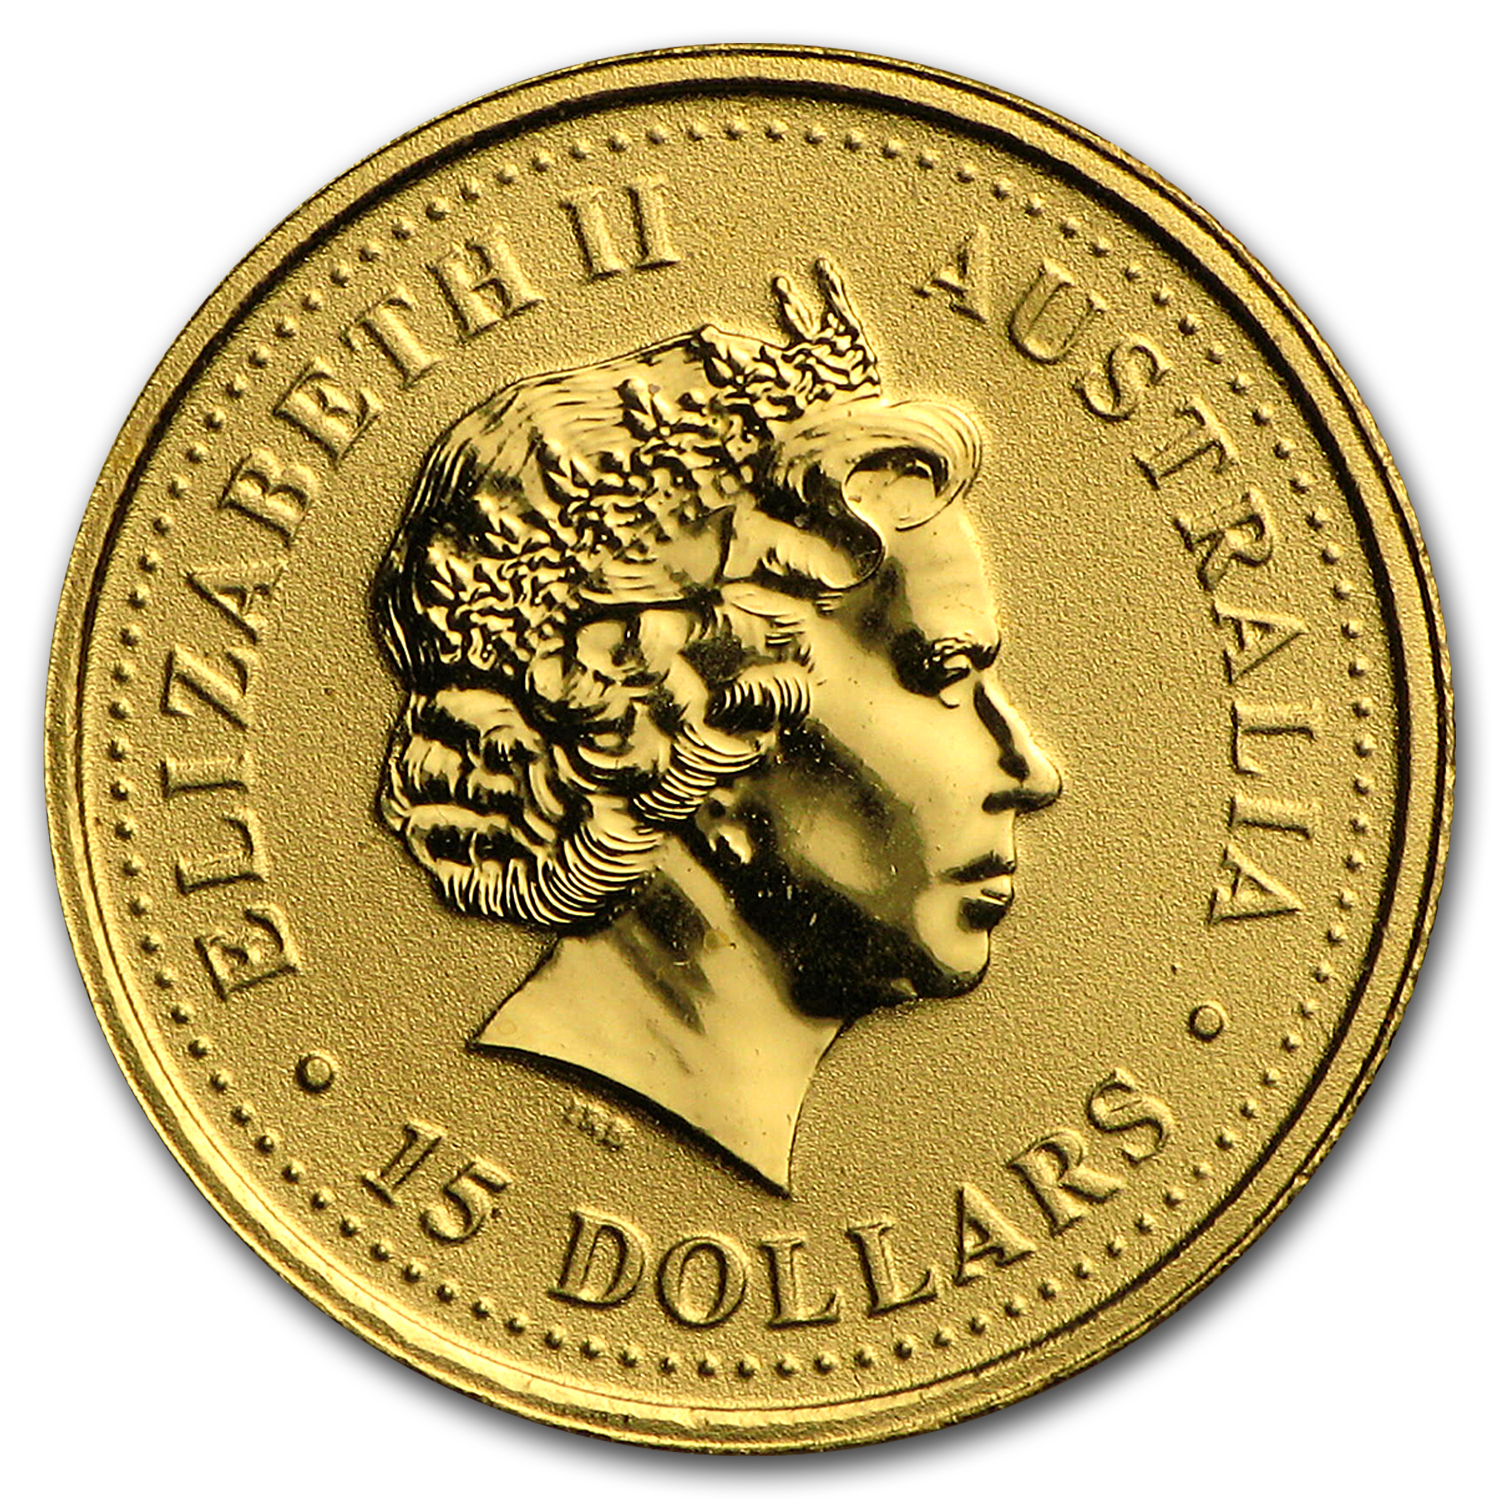 2000 1/10 oz Australian Gold Nugget